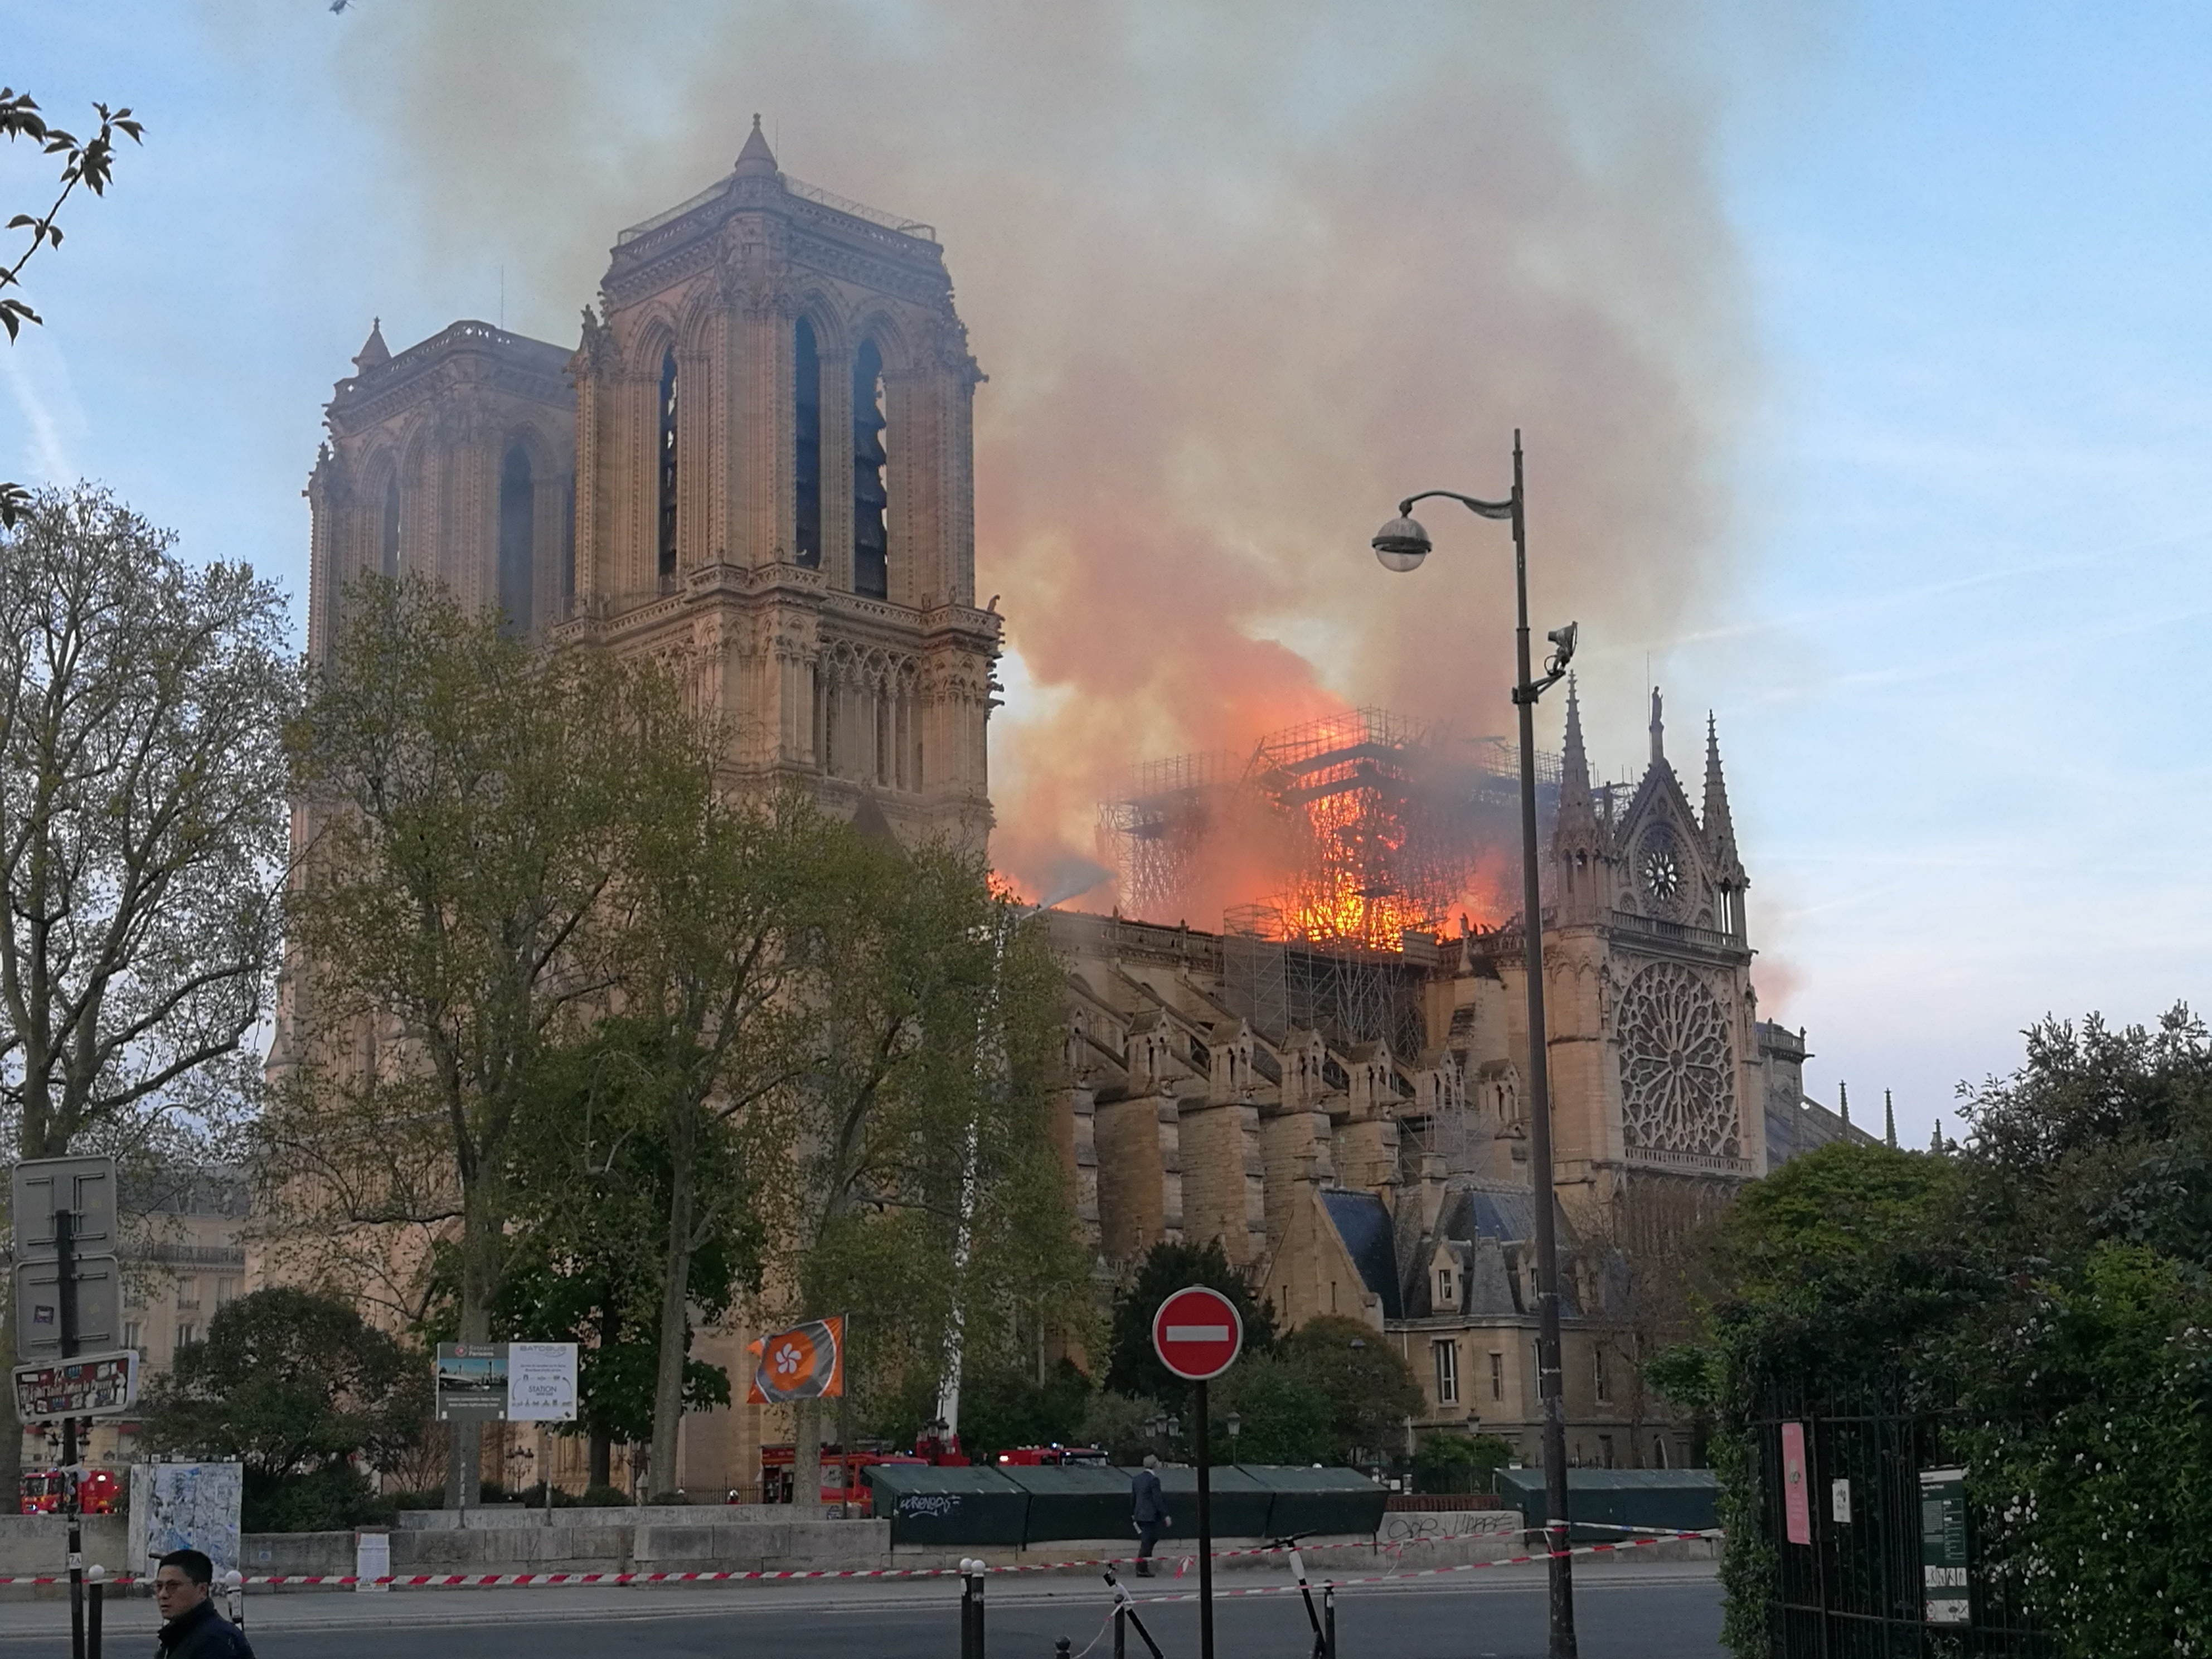 The devastating fire ripped through the iconic building last week. Credit: PA